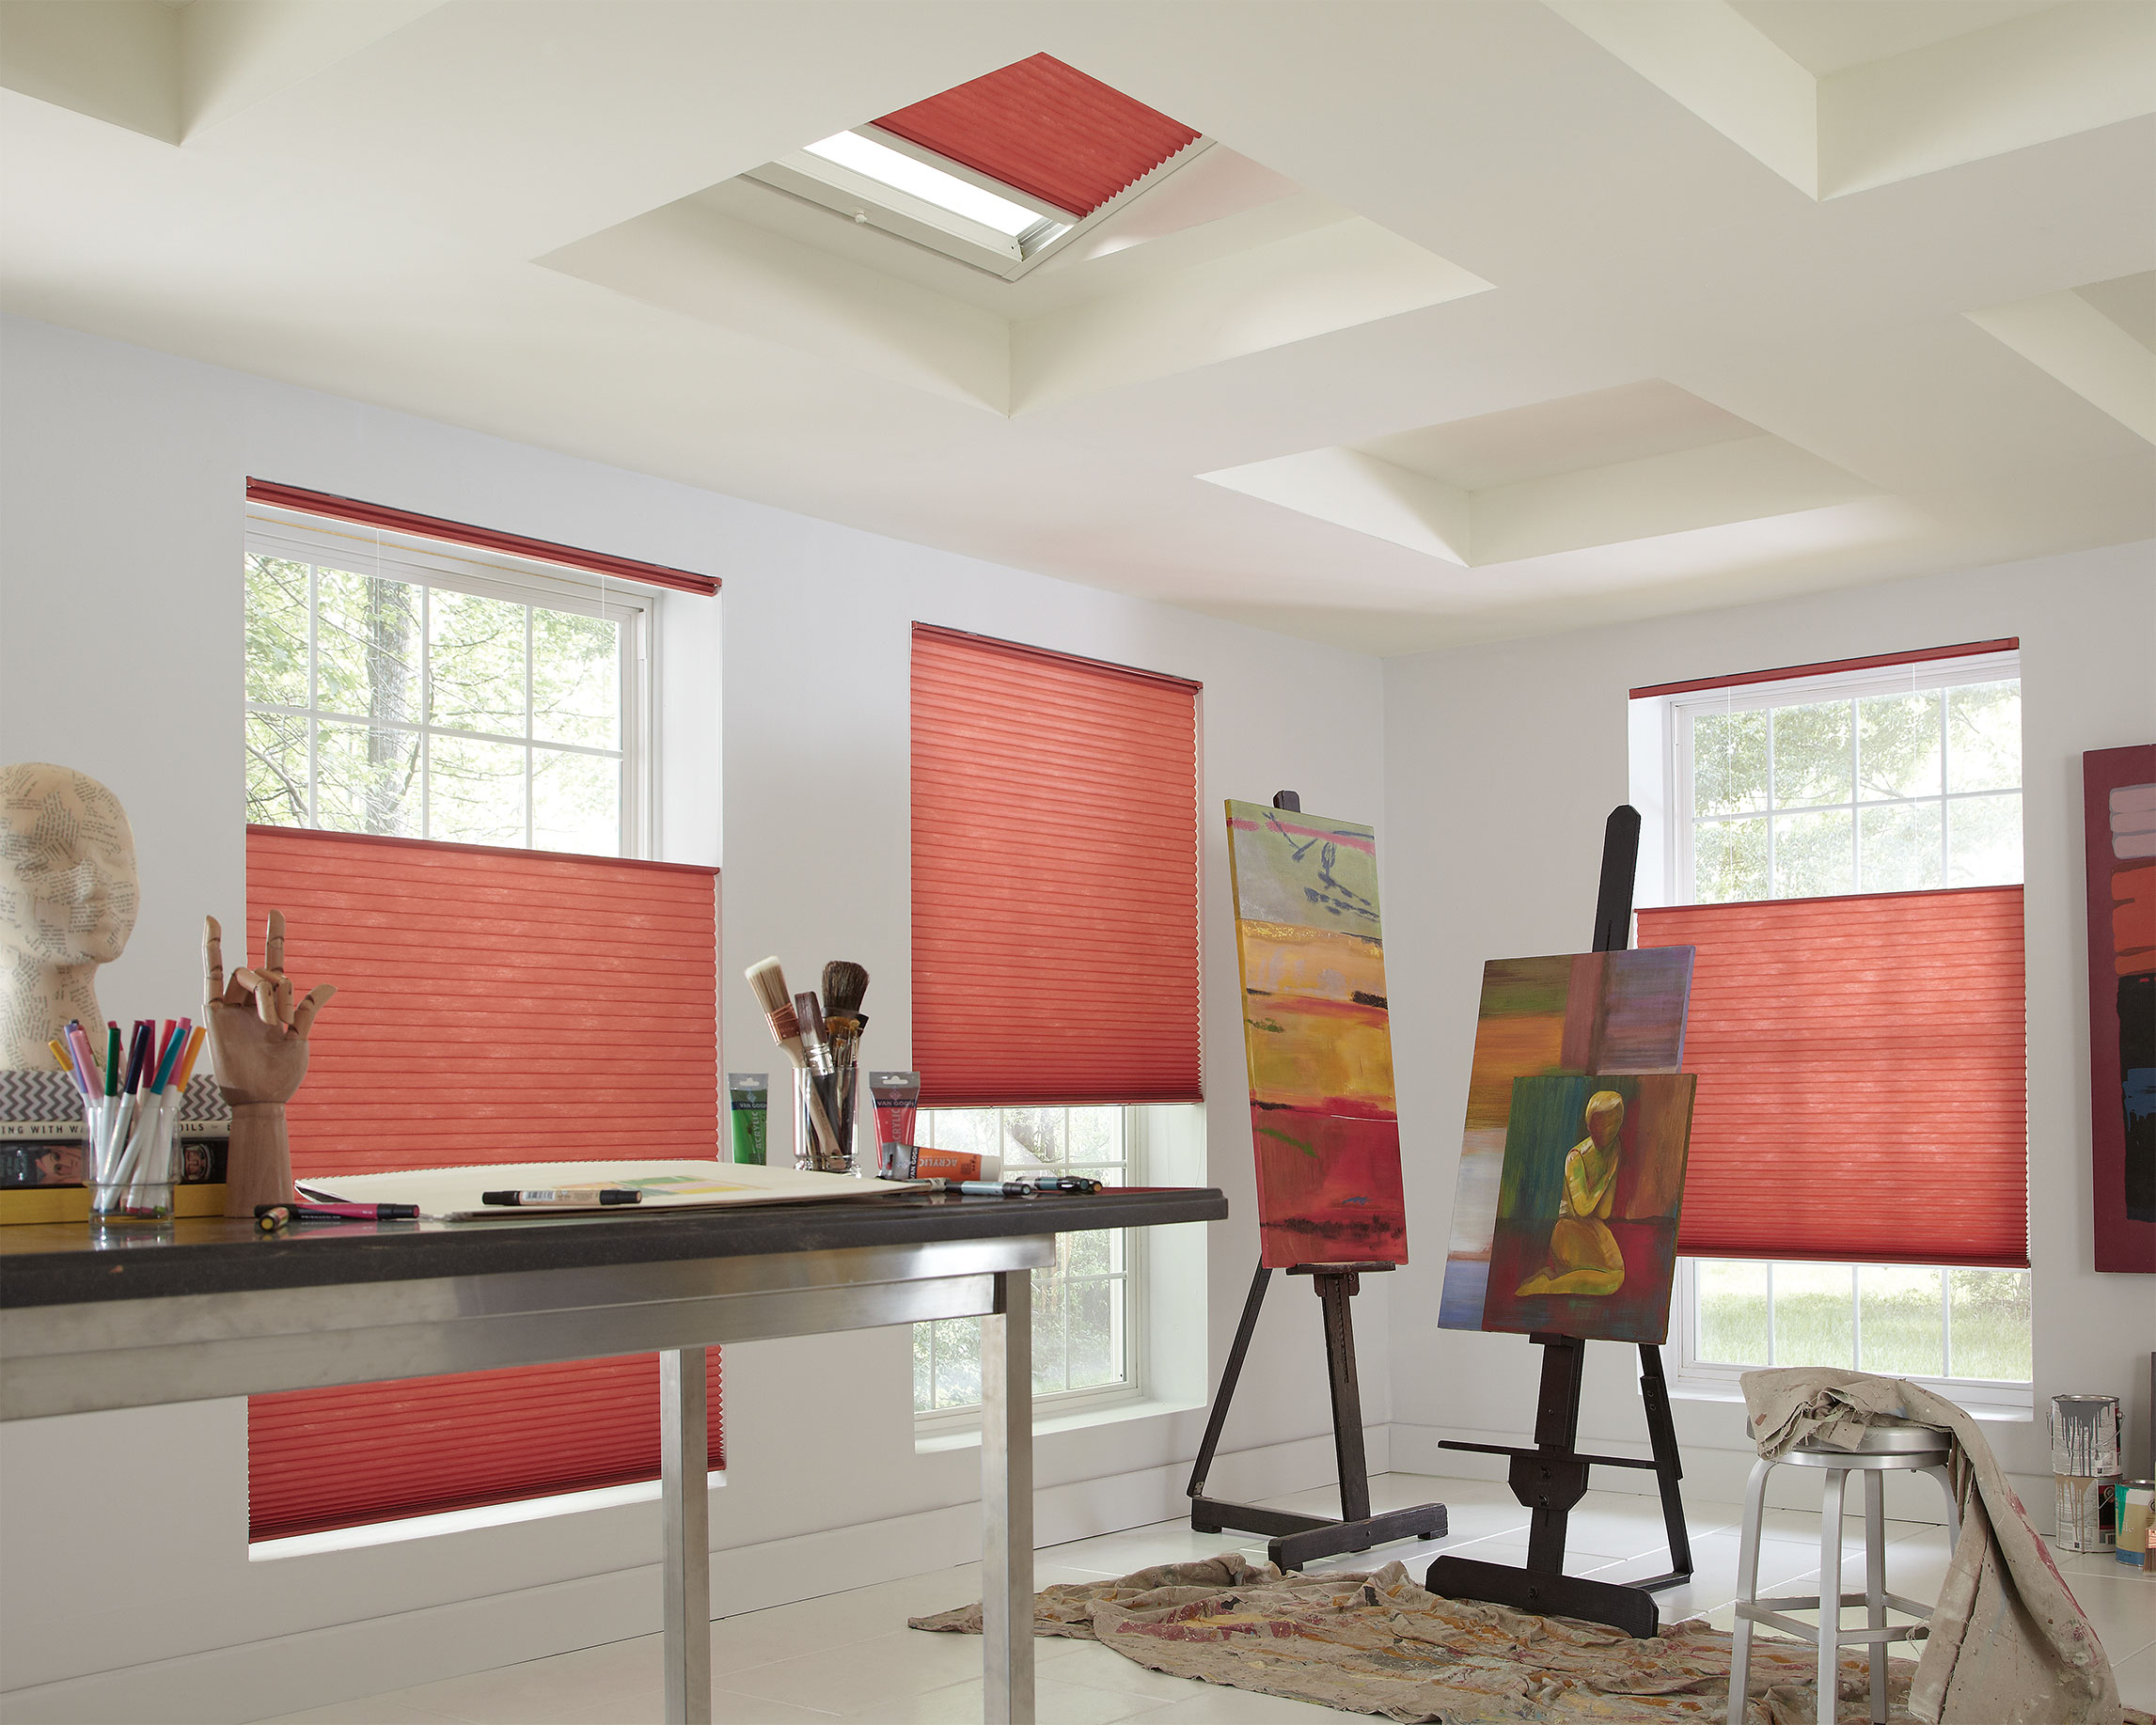 Bright rose colored cellular shades hang in three large windows and the skylights of an artist's studio featuring bright paintings and tarps.